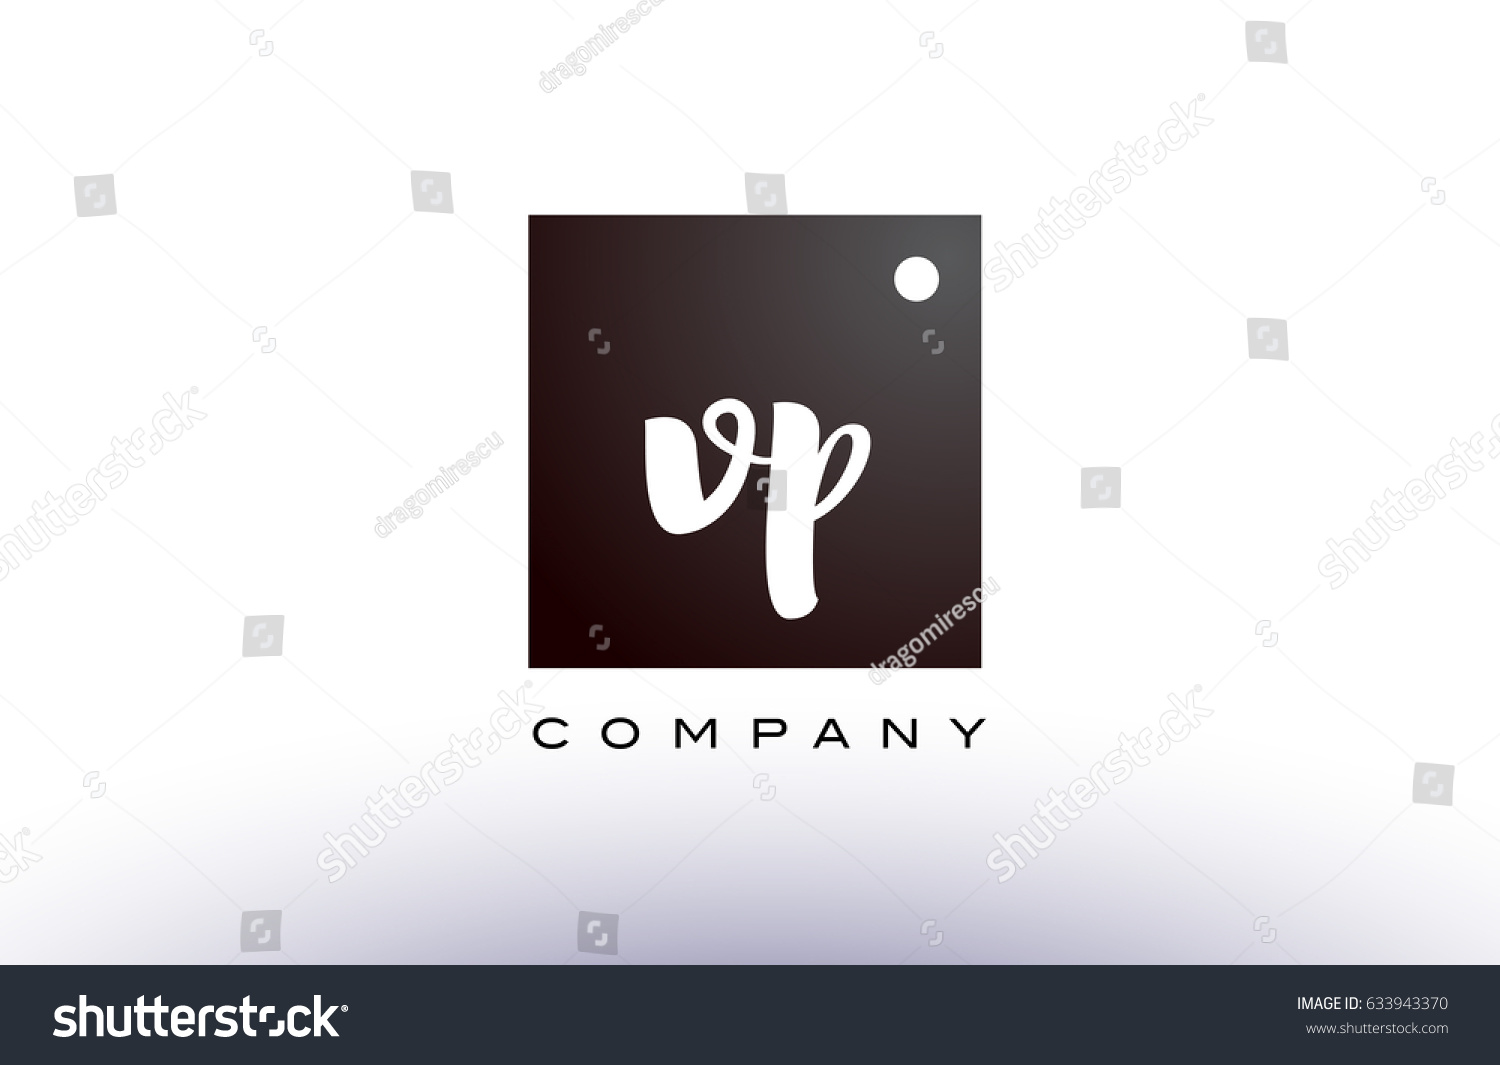 Vp v p black white handwritten stock vector 633943370 shutterstock vp v p black white handwritten handwriting alphabet company letter logo square design template dot dots creative buycottarizona Image collections